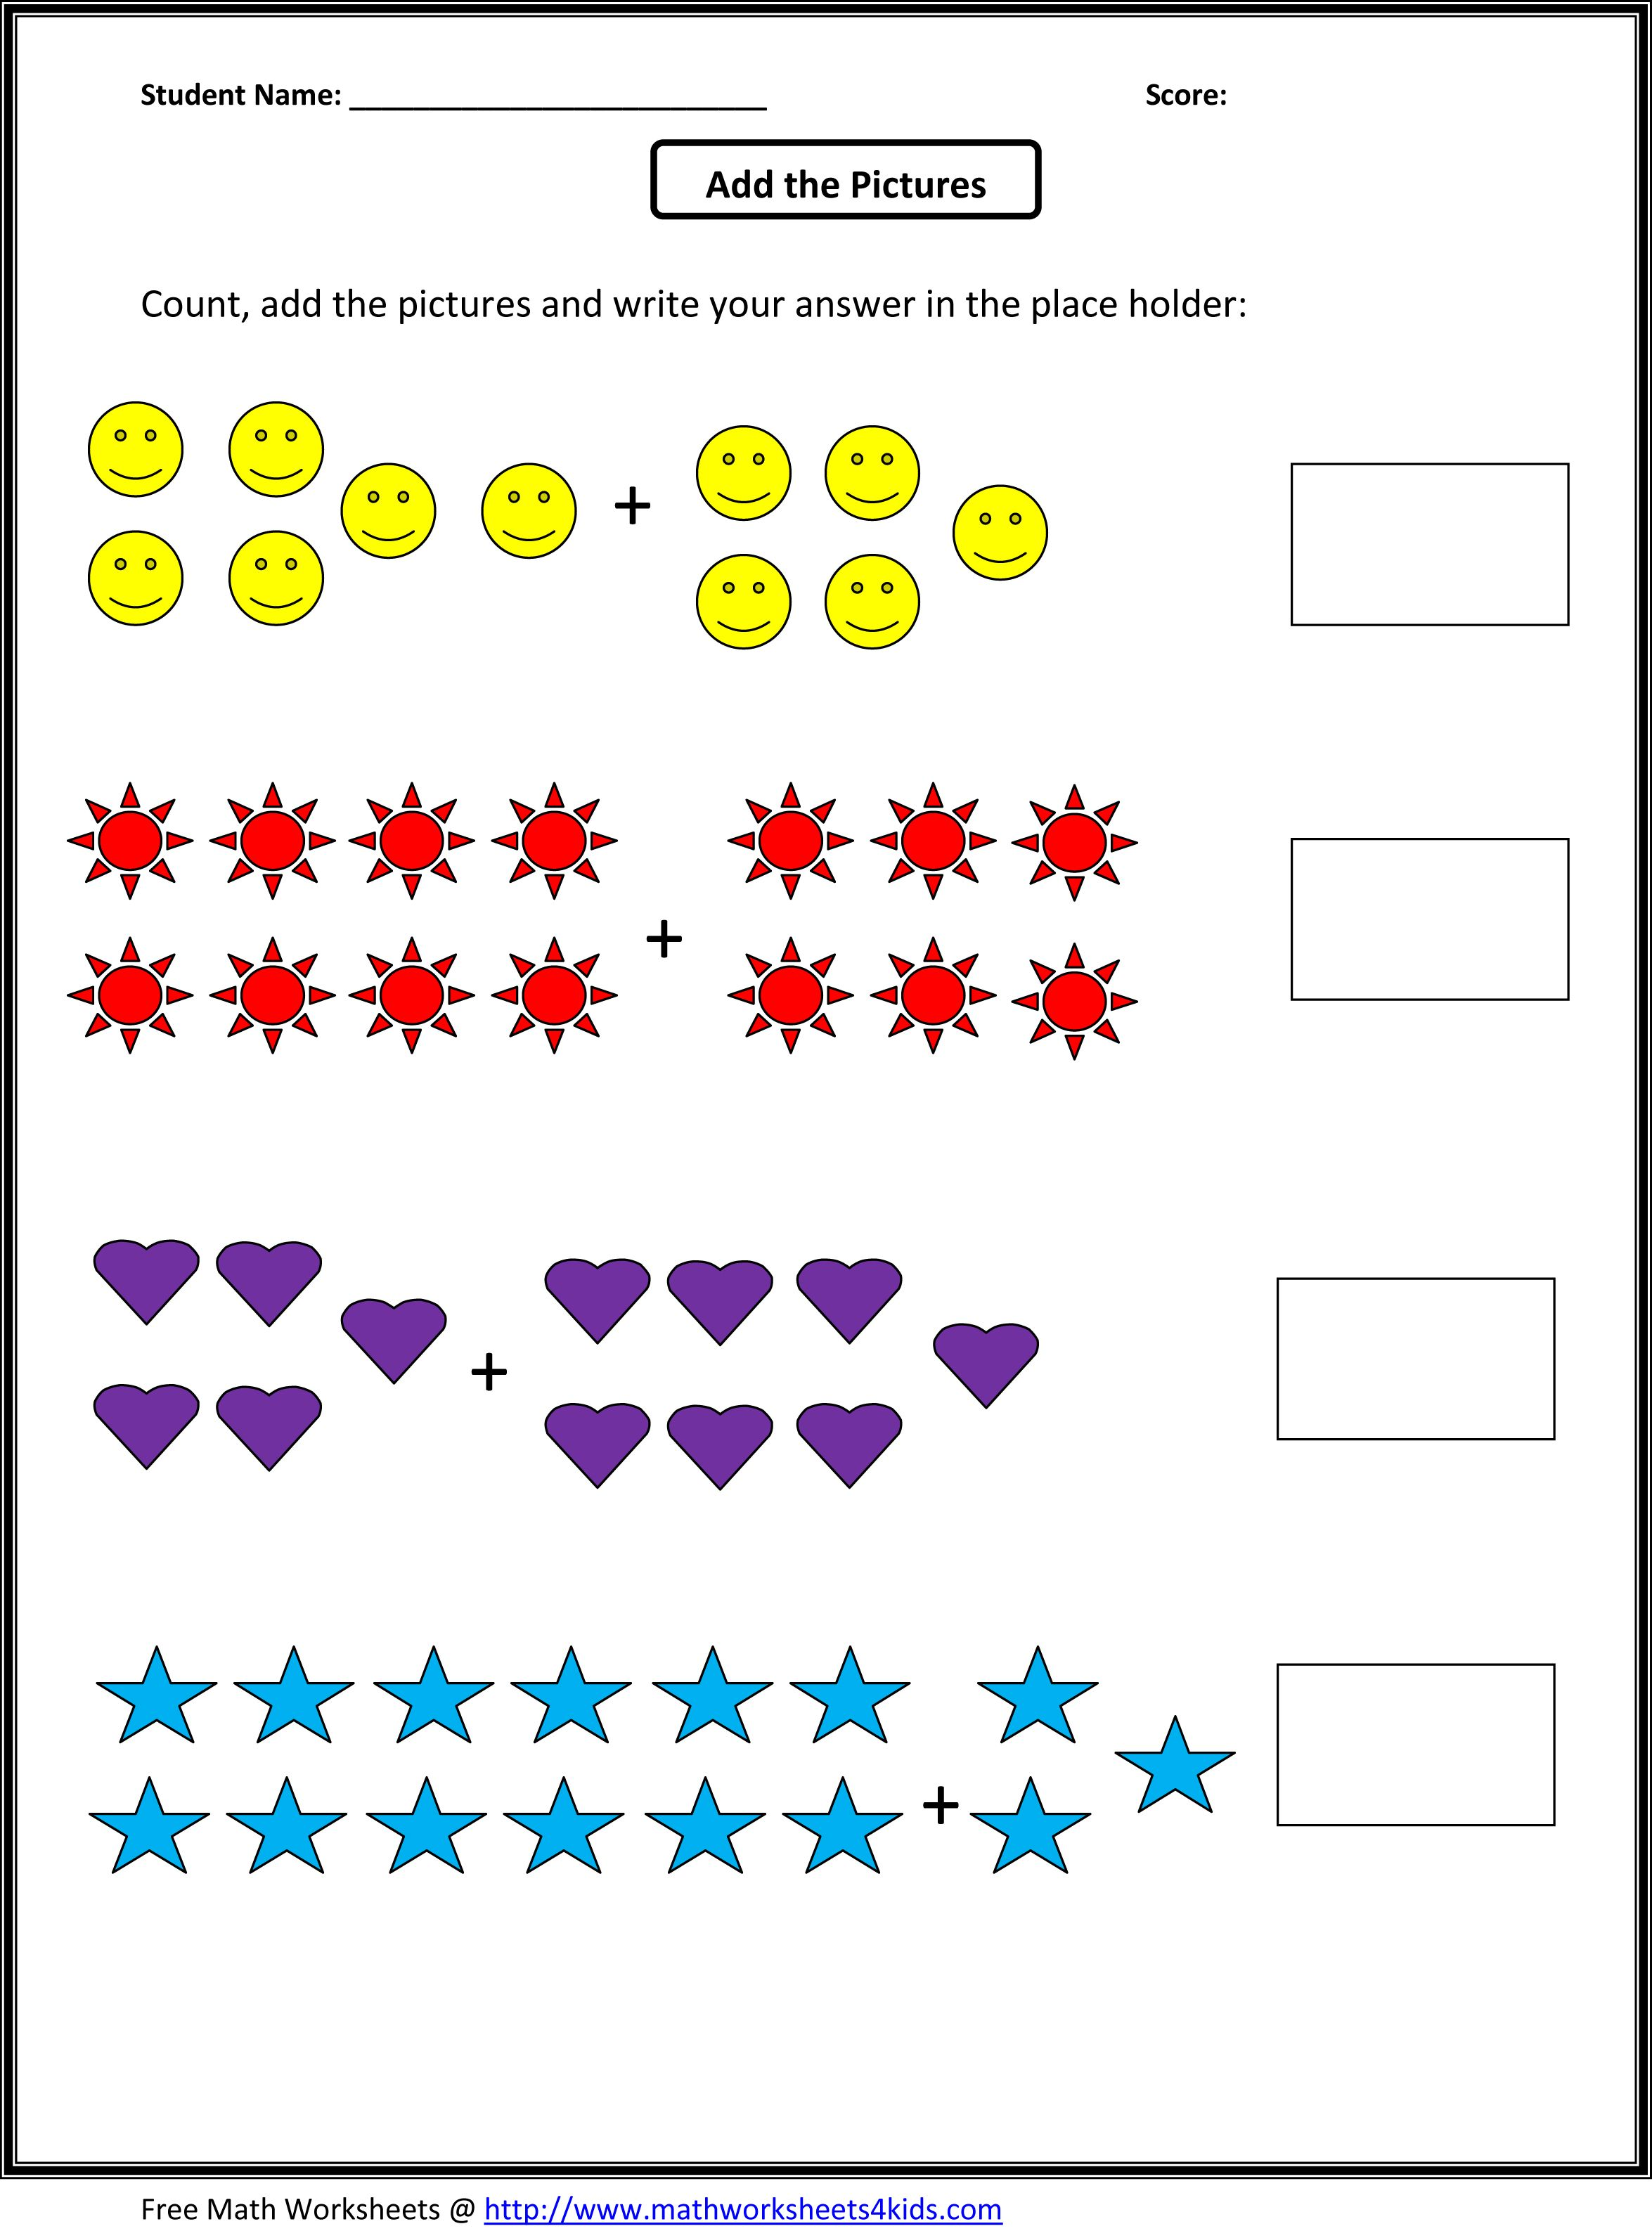 Worksheets Math Worksheets For 1st Grade Printable 1 grade worksheet davezan math davezan